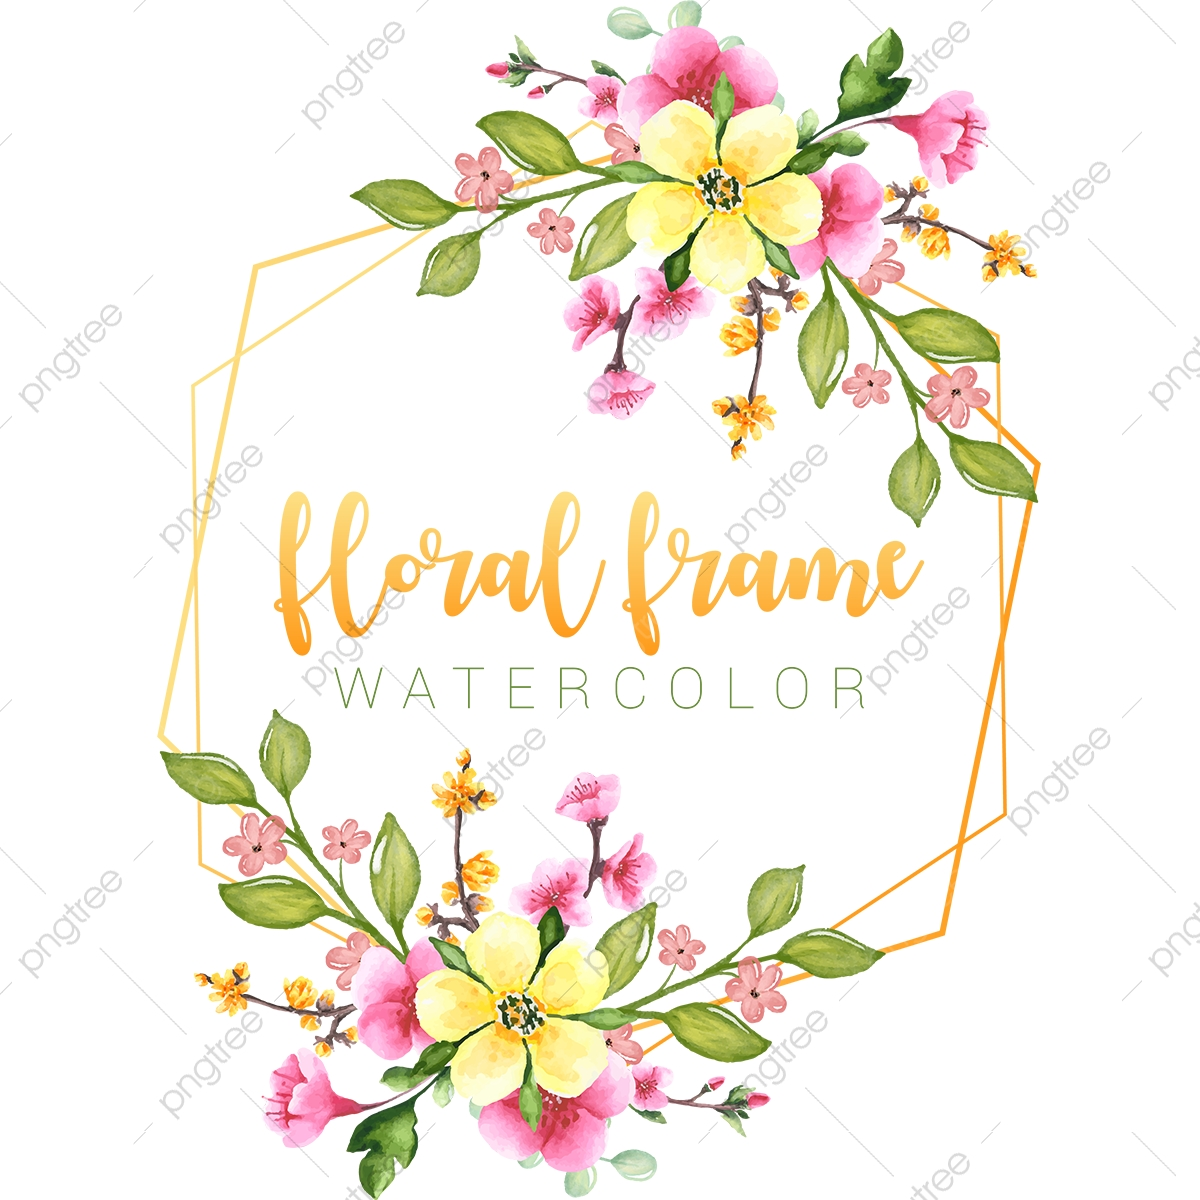 Spring Flowers Floral Frame Vector Watercolor Illustration Best Bloom Transparent Png And Vector With Transparent Background For Free Download